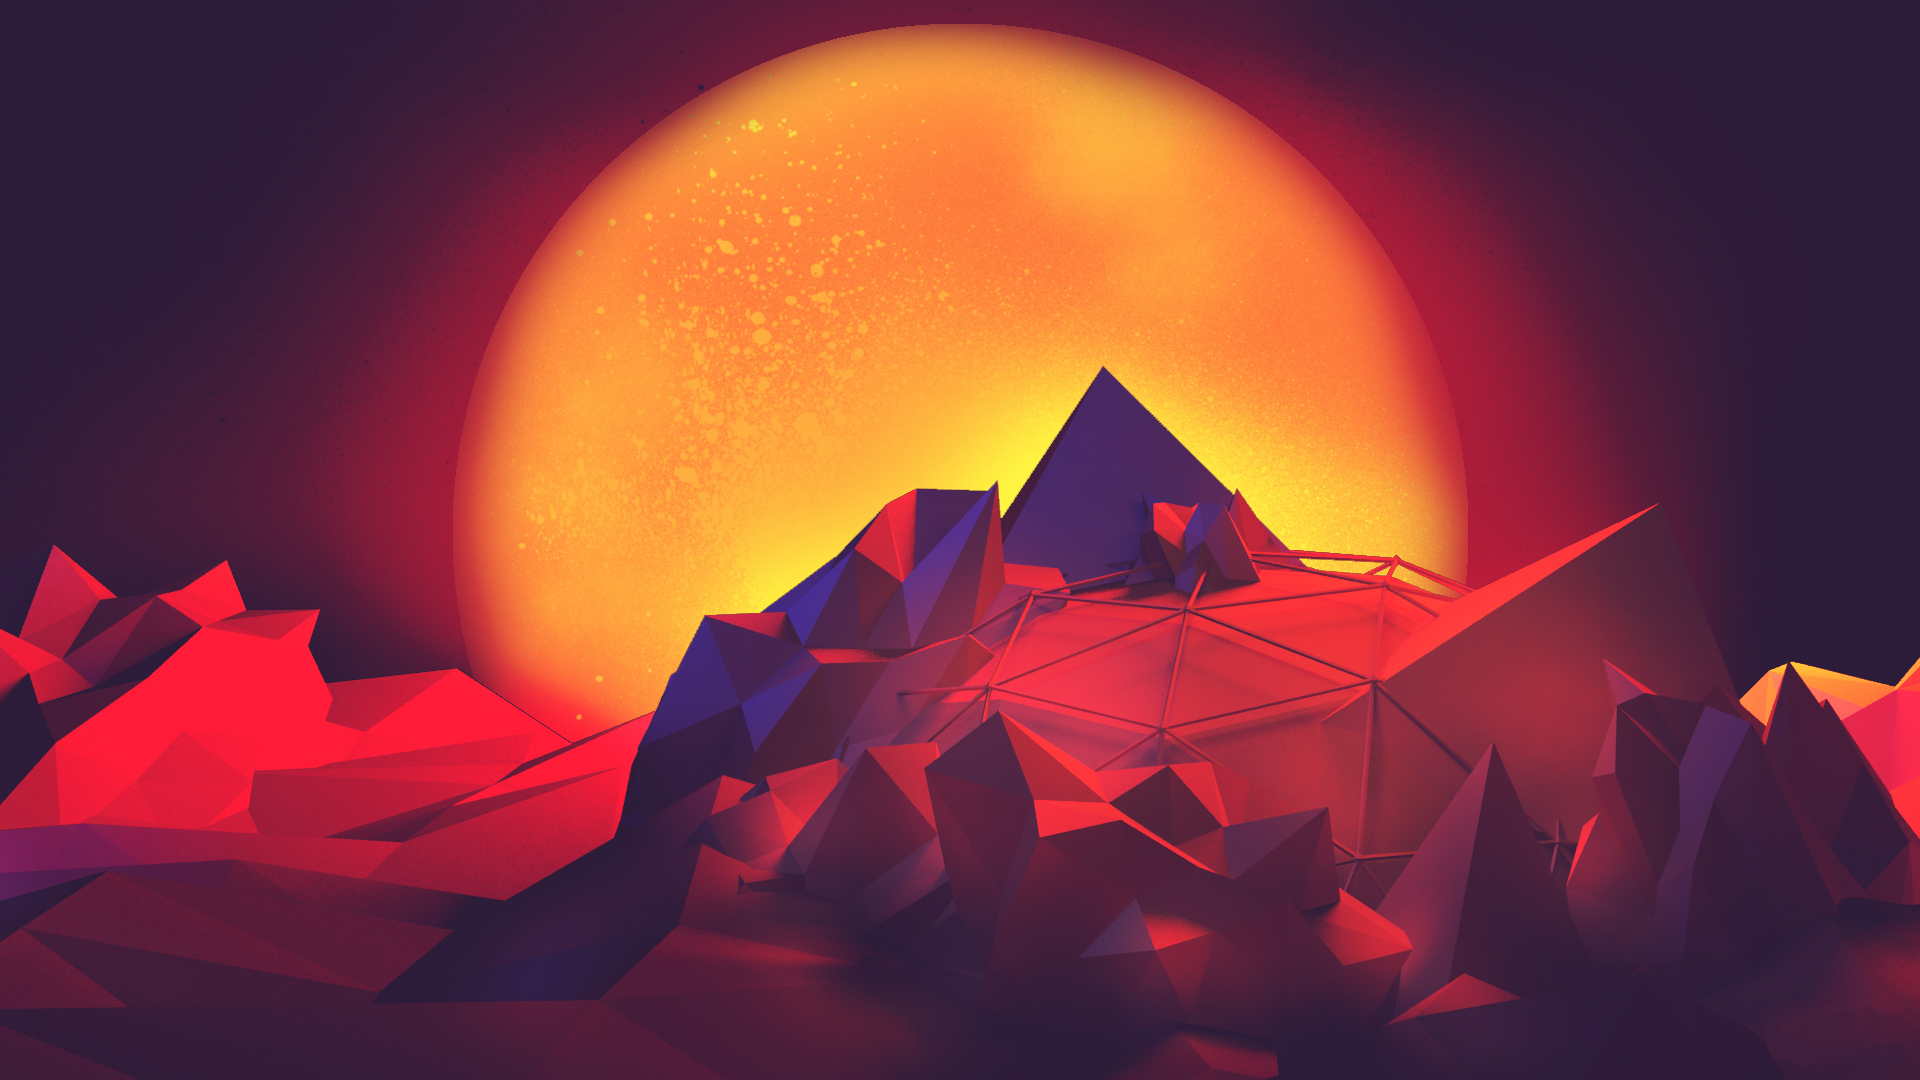 Download Cute Wallpapers For Pc Abstract Polygon Art Hd Wallpaper Art And Paintings